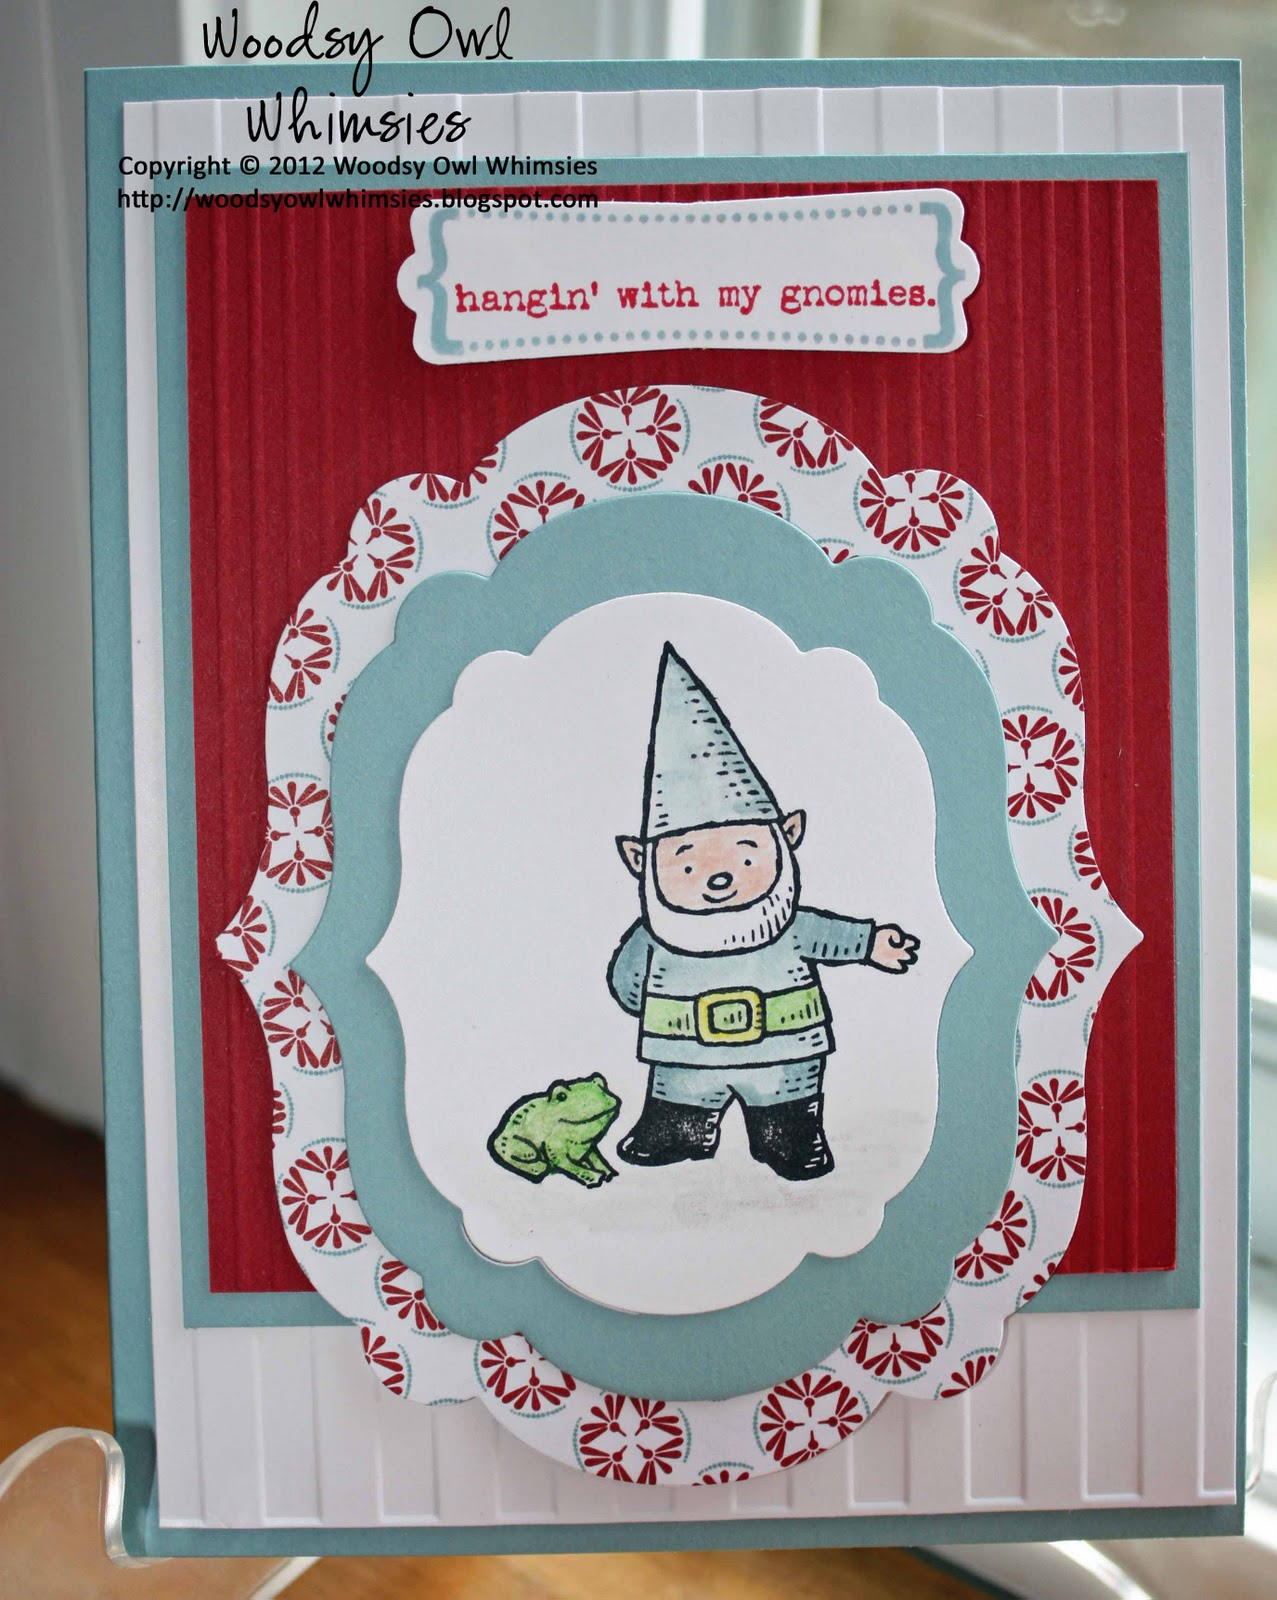 Gnome In Garden: Woodsy Owl's Whimsical World: Hangin' With My Gnomies